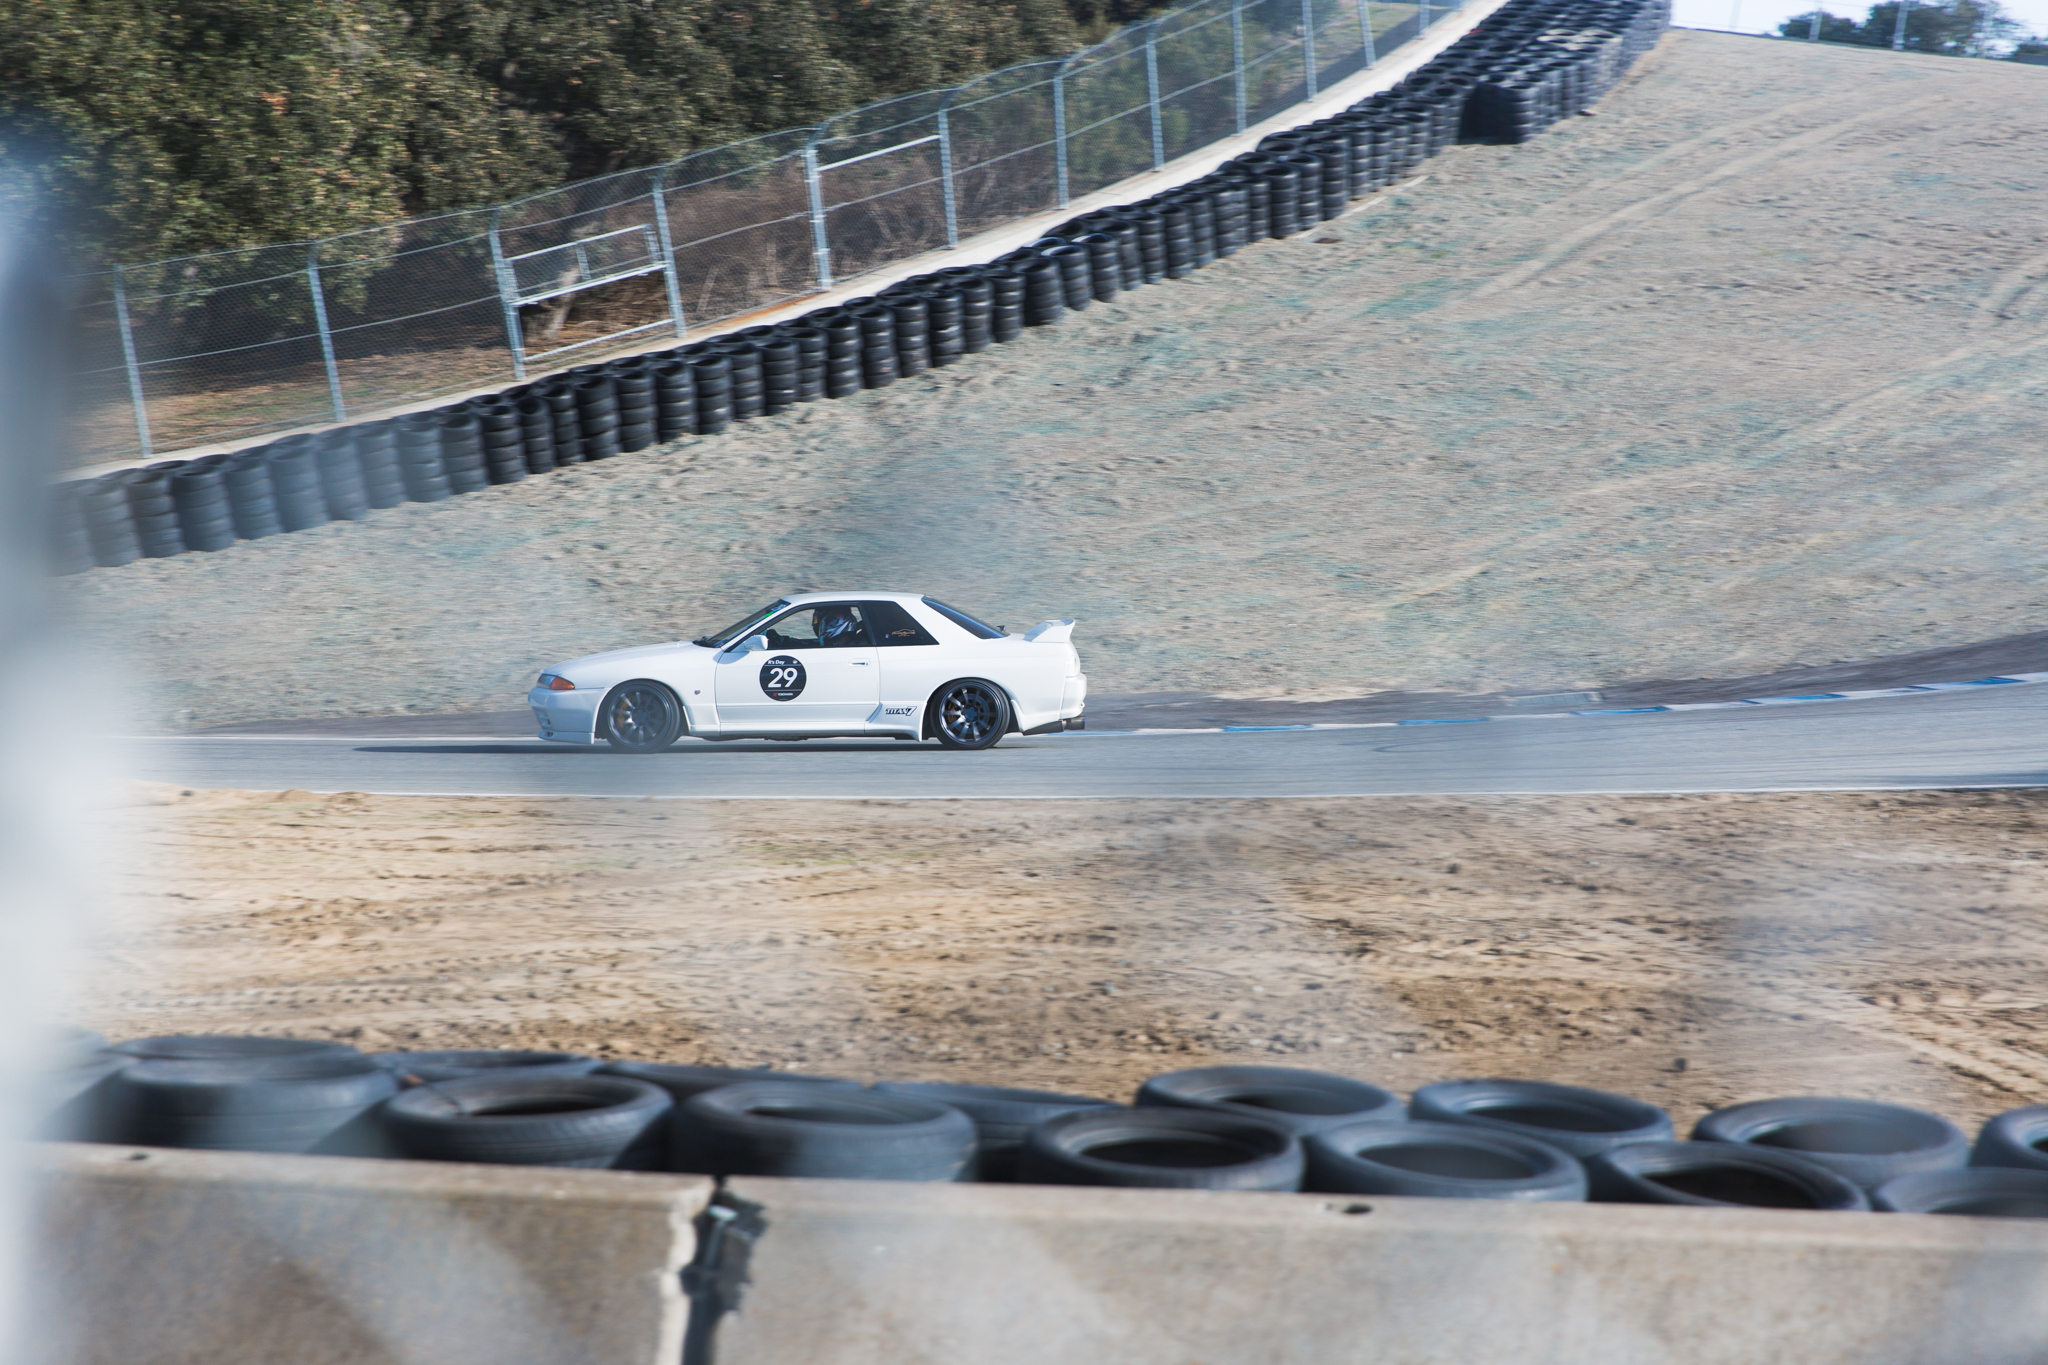 Stay_Driven_Rs_Day-49.jpg